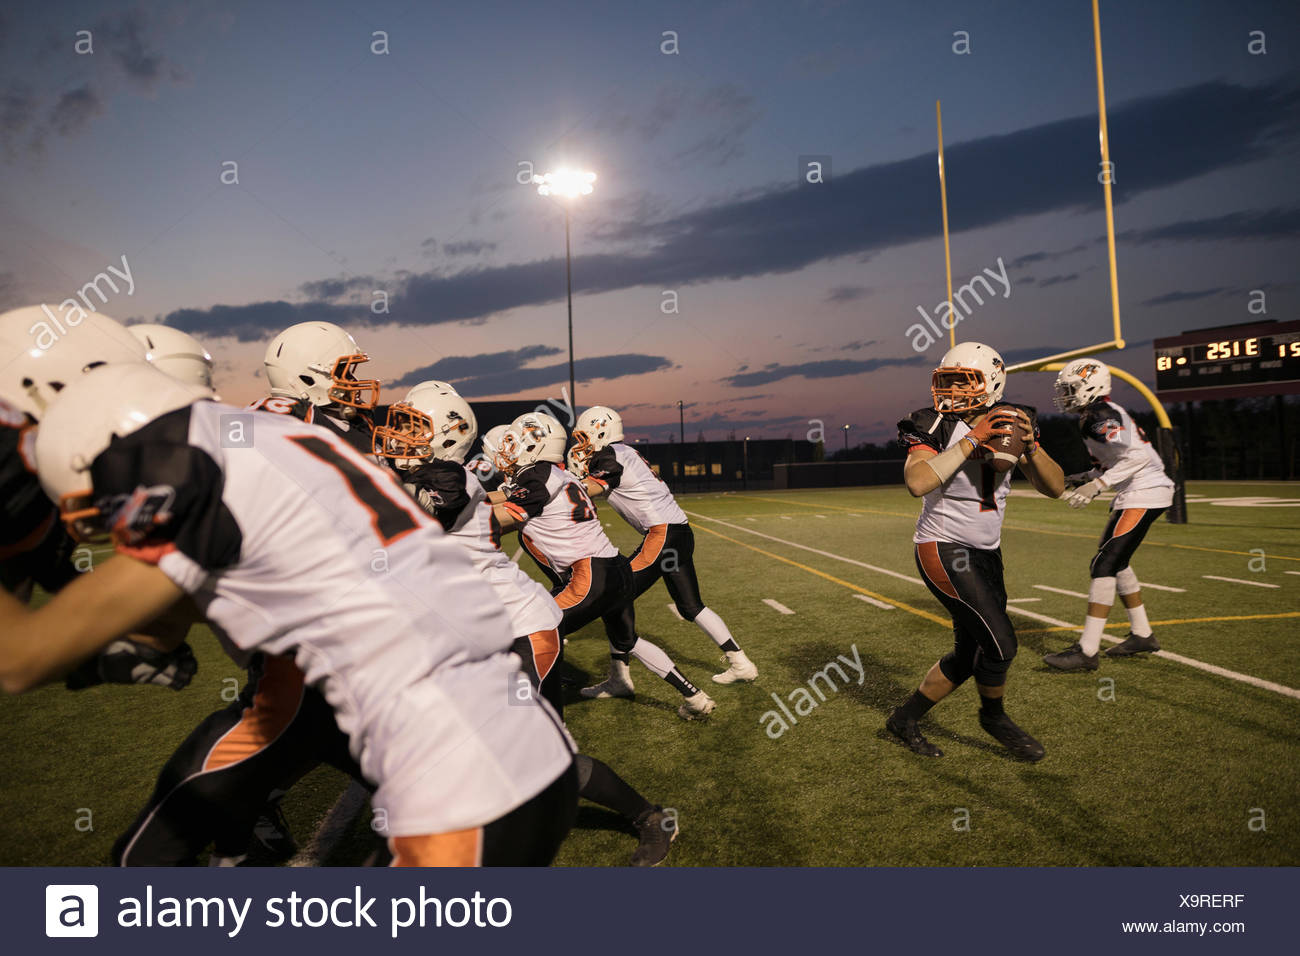 Teenage boy high school football quarterback throwing the ball during game on football field - Stock Image